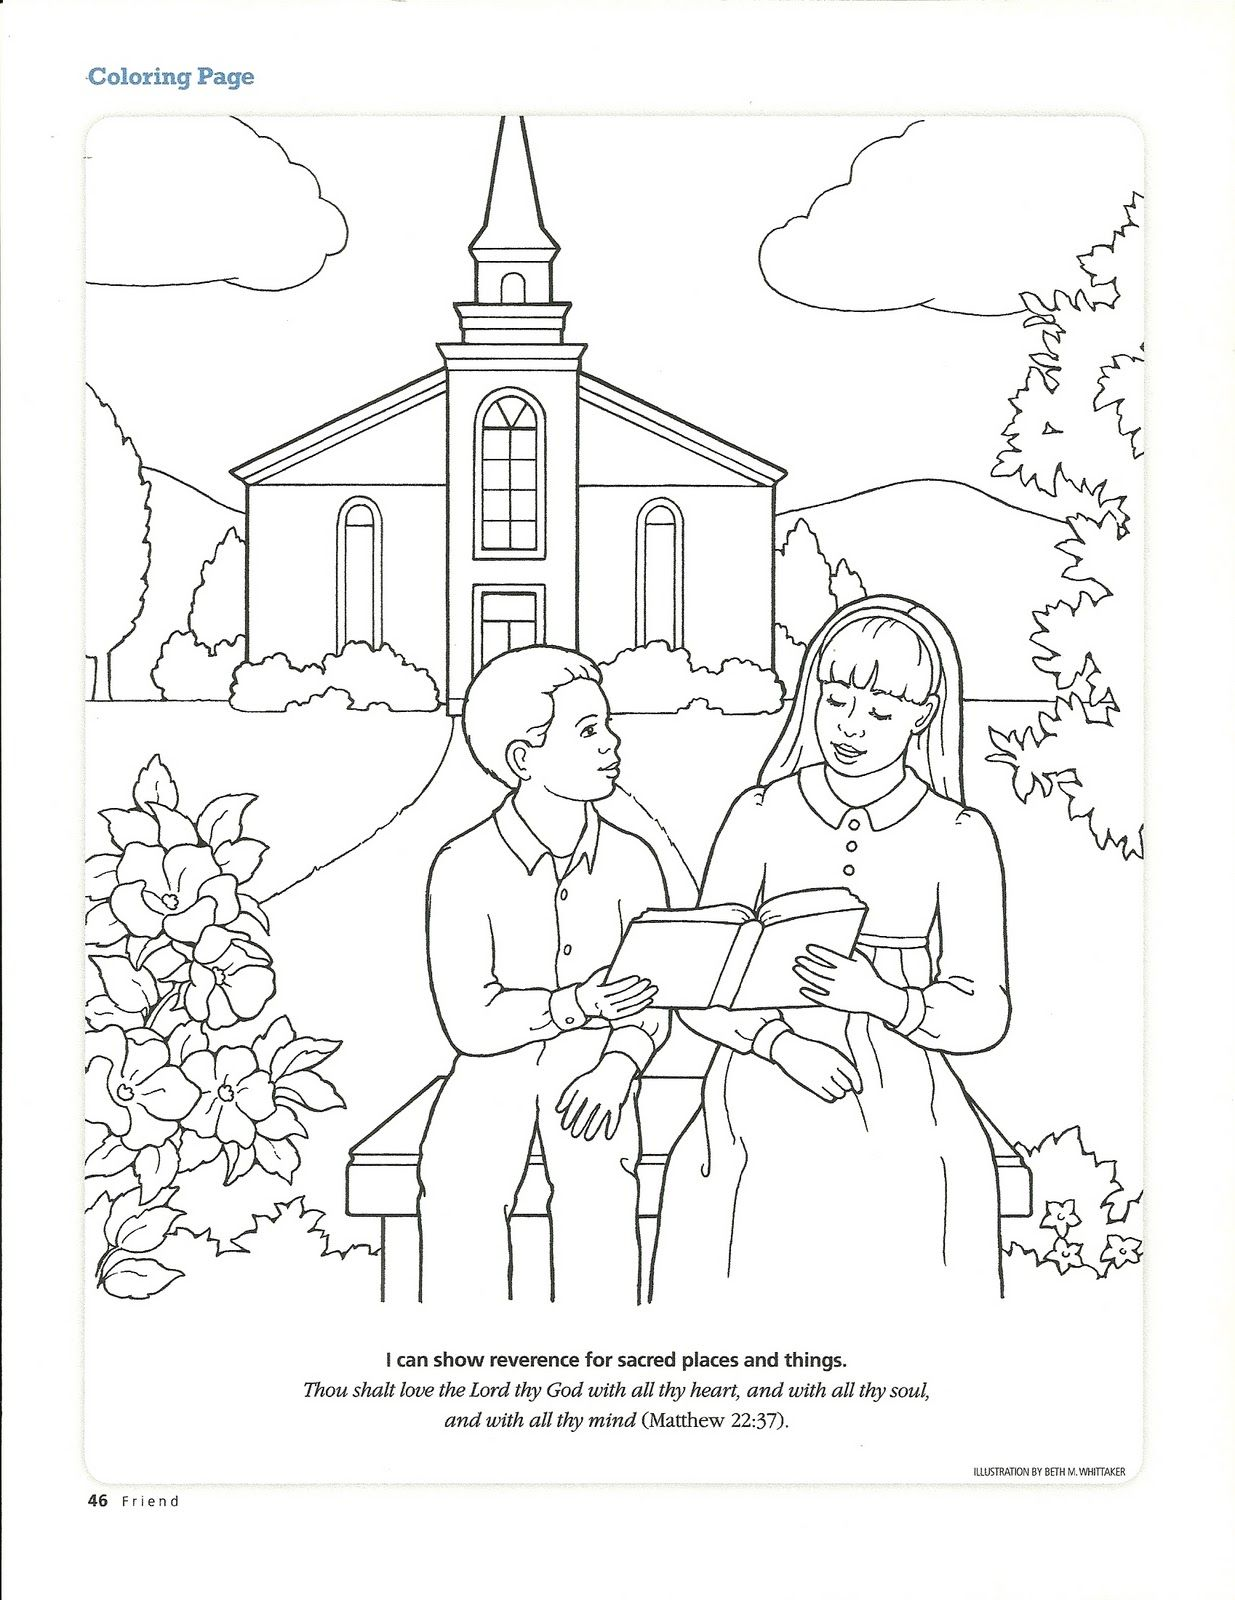 Primary 3 Manual Lesson 40 Worshiping At Church Journal Page Coloring Page From The Behold Your